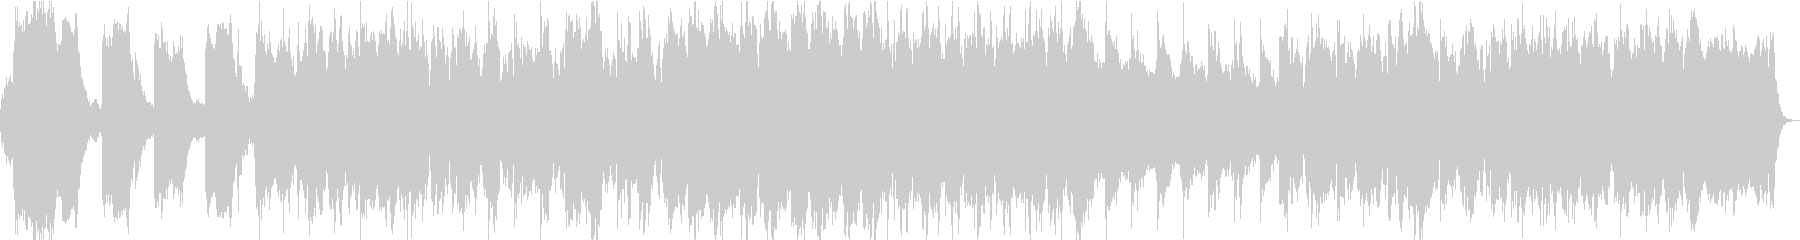 Movie Trailer Bulgarian Voice Chorus's unreproduced waveform